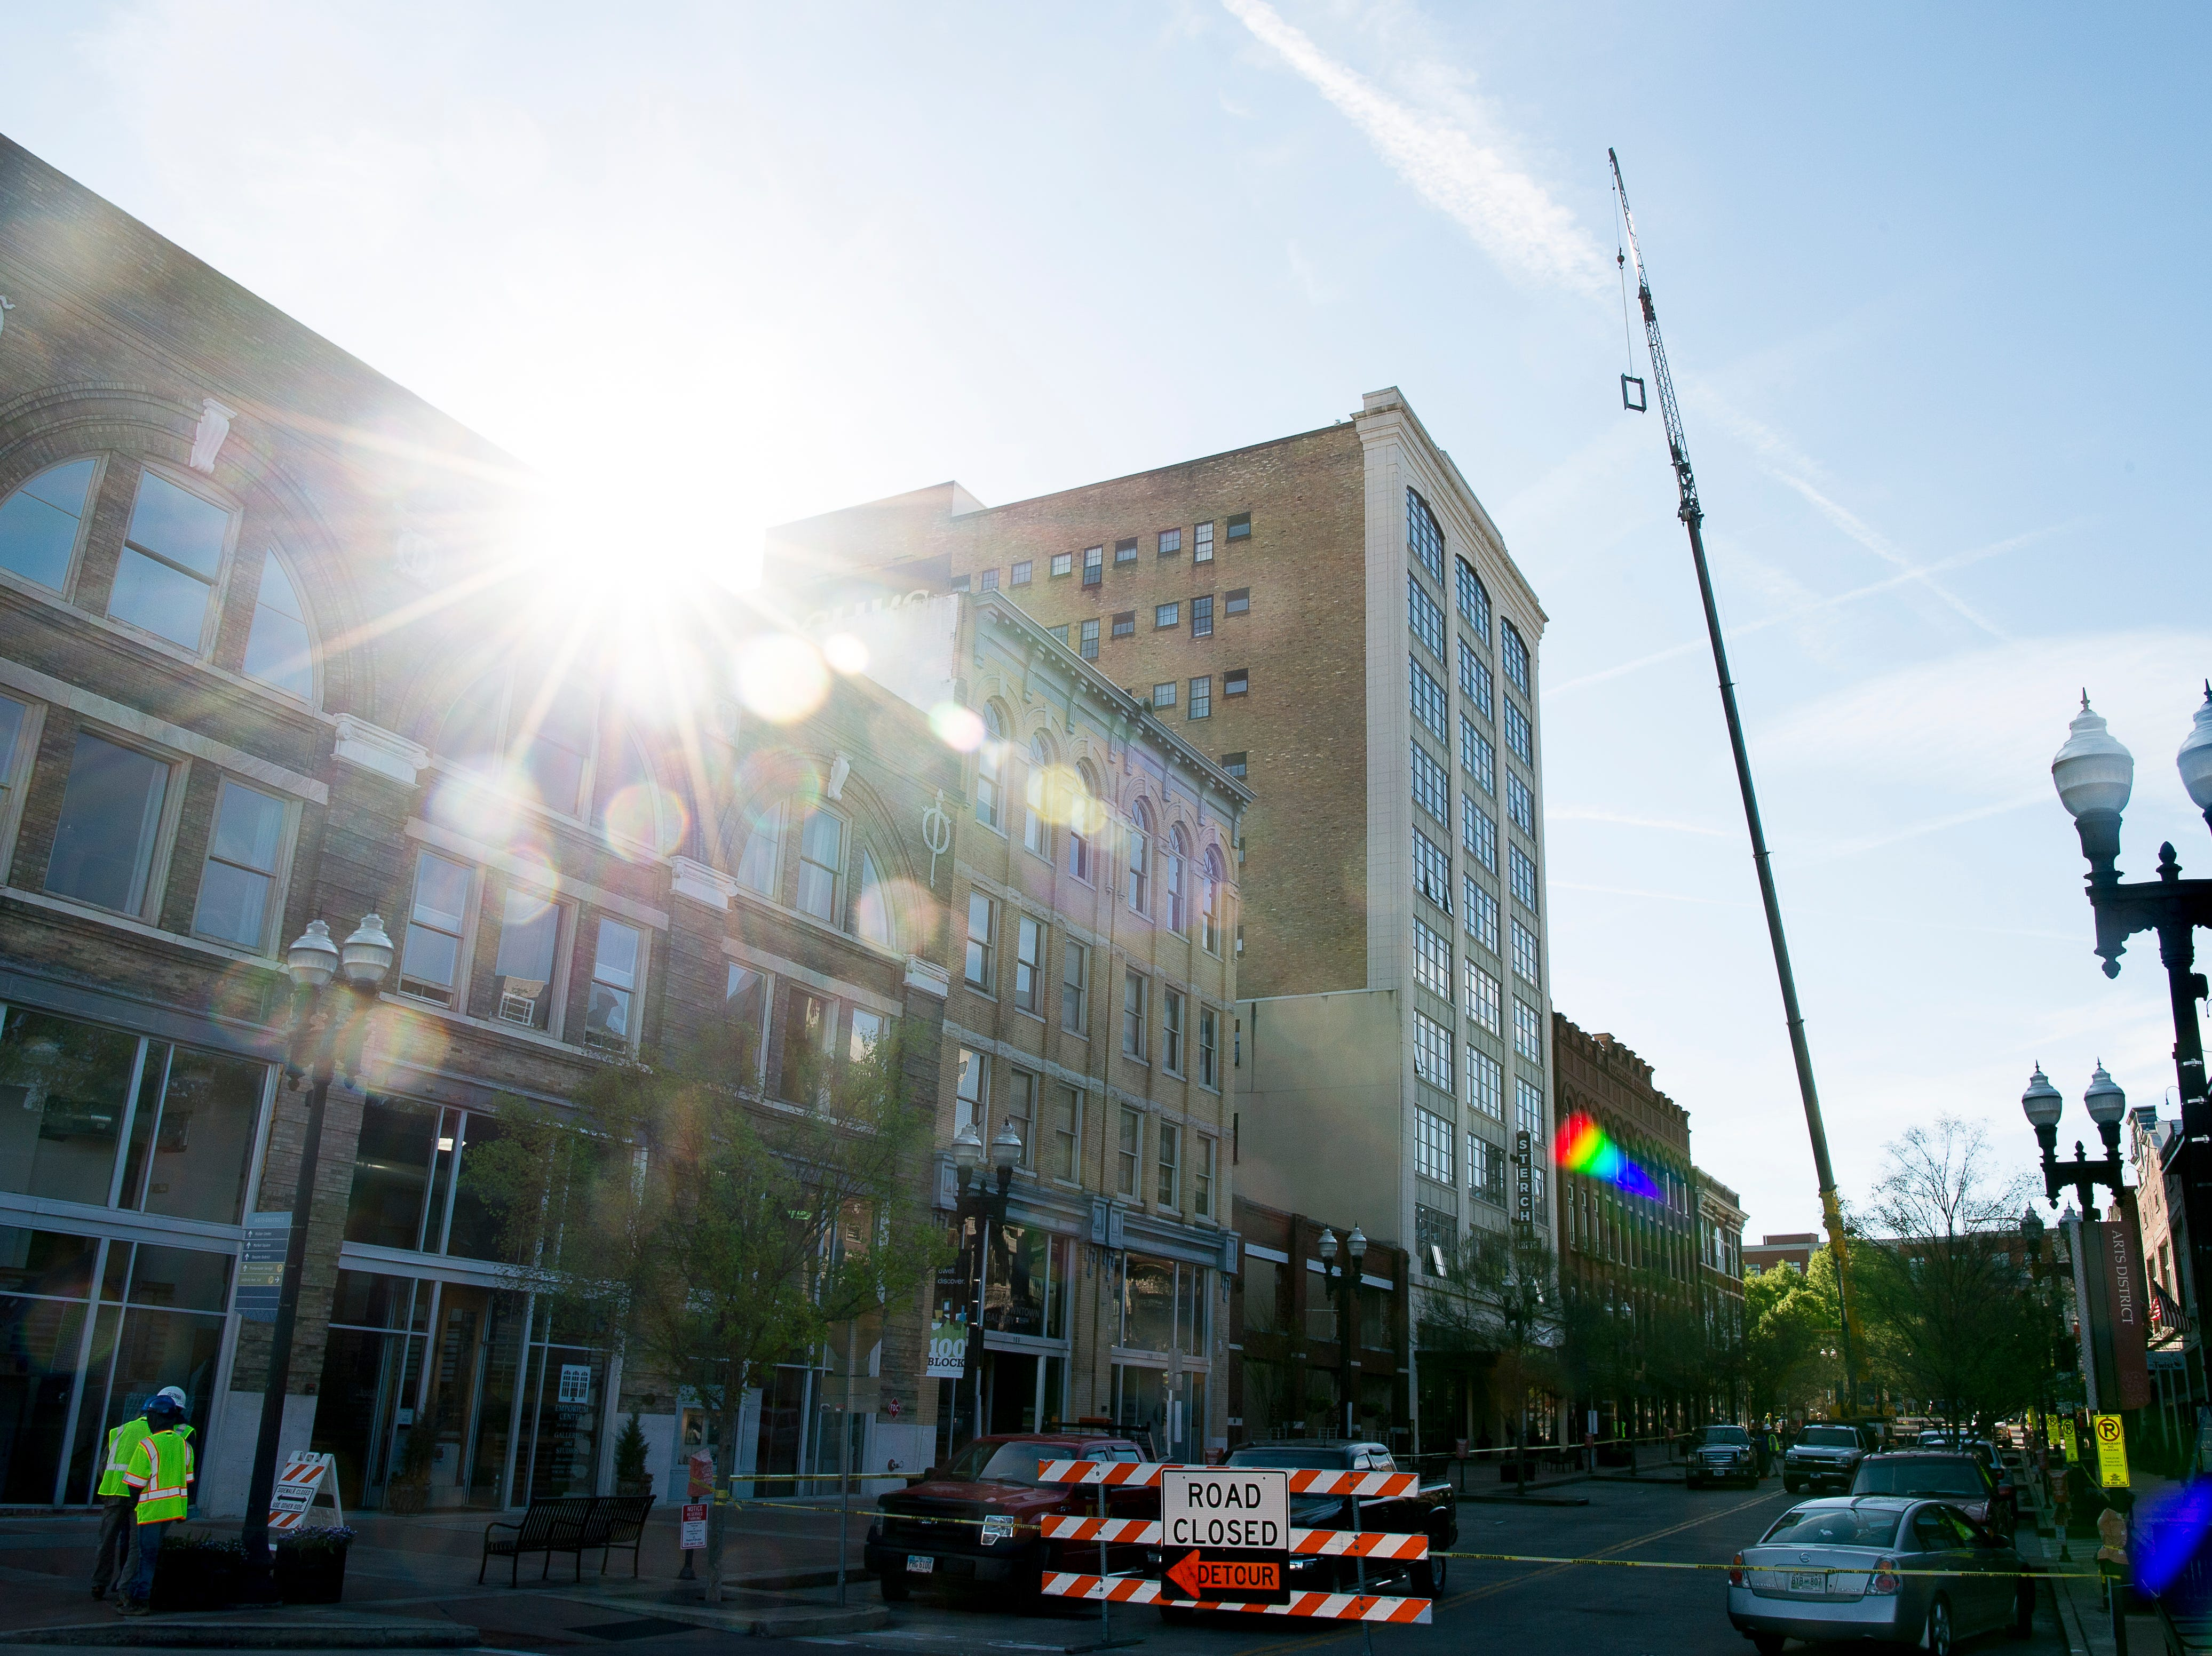 A crane hoists equipment to the roof of Sterchi Lofts in Knoxville, Tennessee on Tuesday, April 16, 2019. A new railing costing an estimated $70,000 is being installed to reopen the rooftop patio this summer.